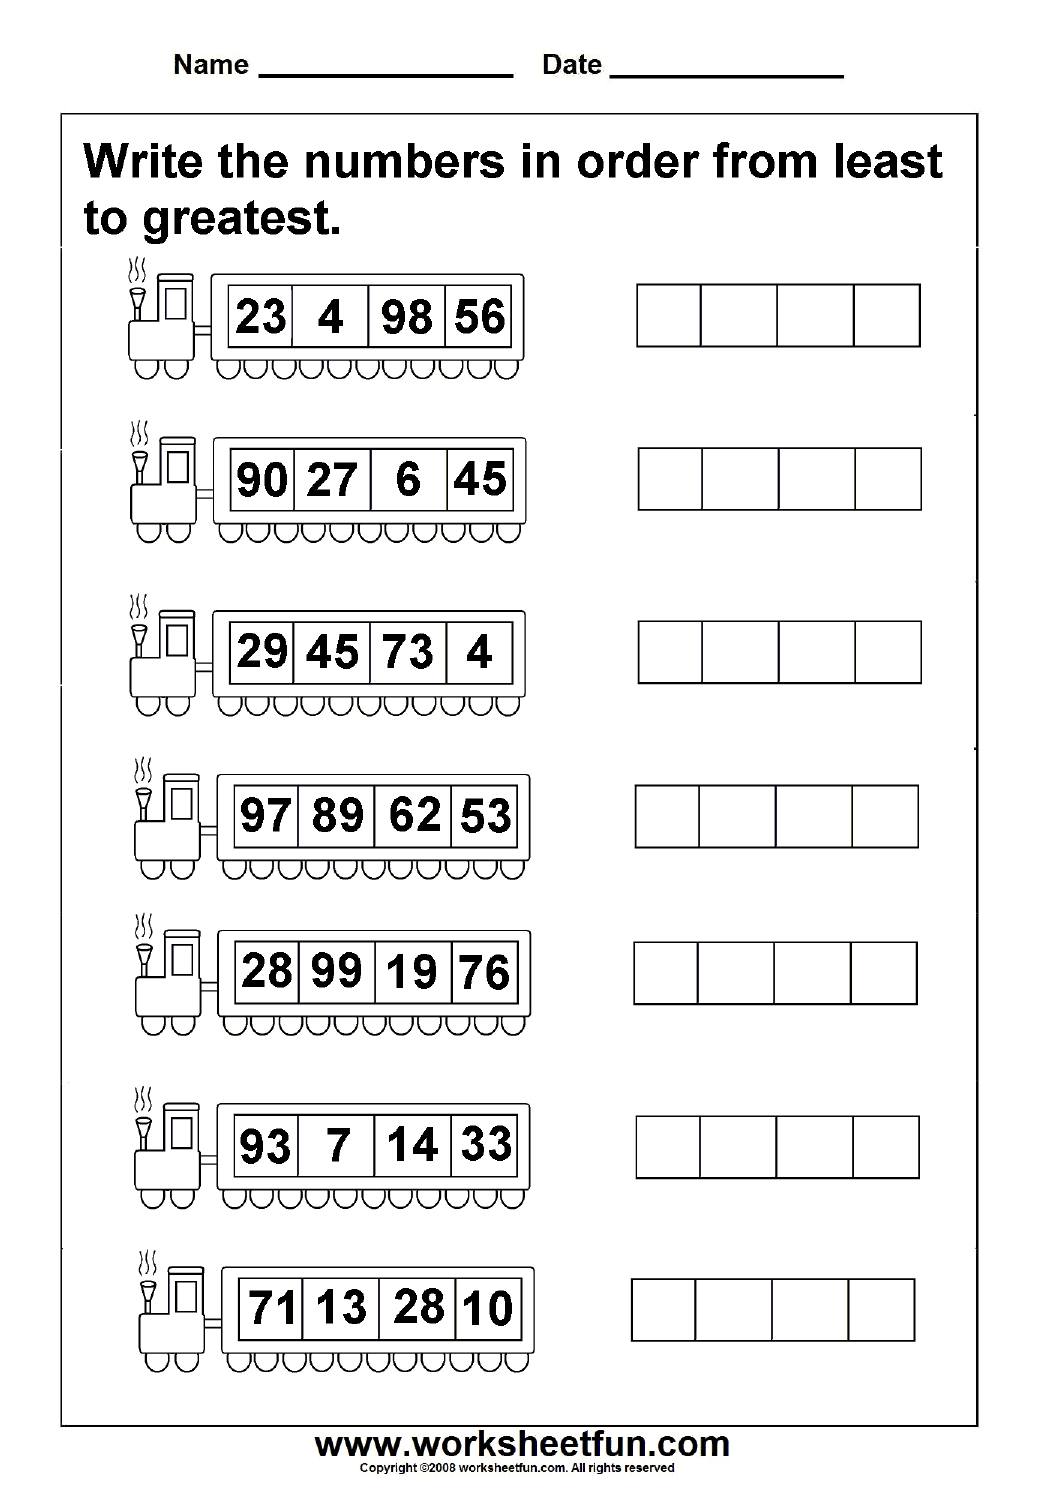 small resolution of Least to greatest numbers – 4 Worksheets   First grade math worksheets